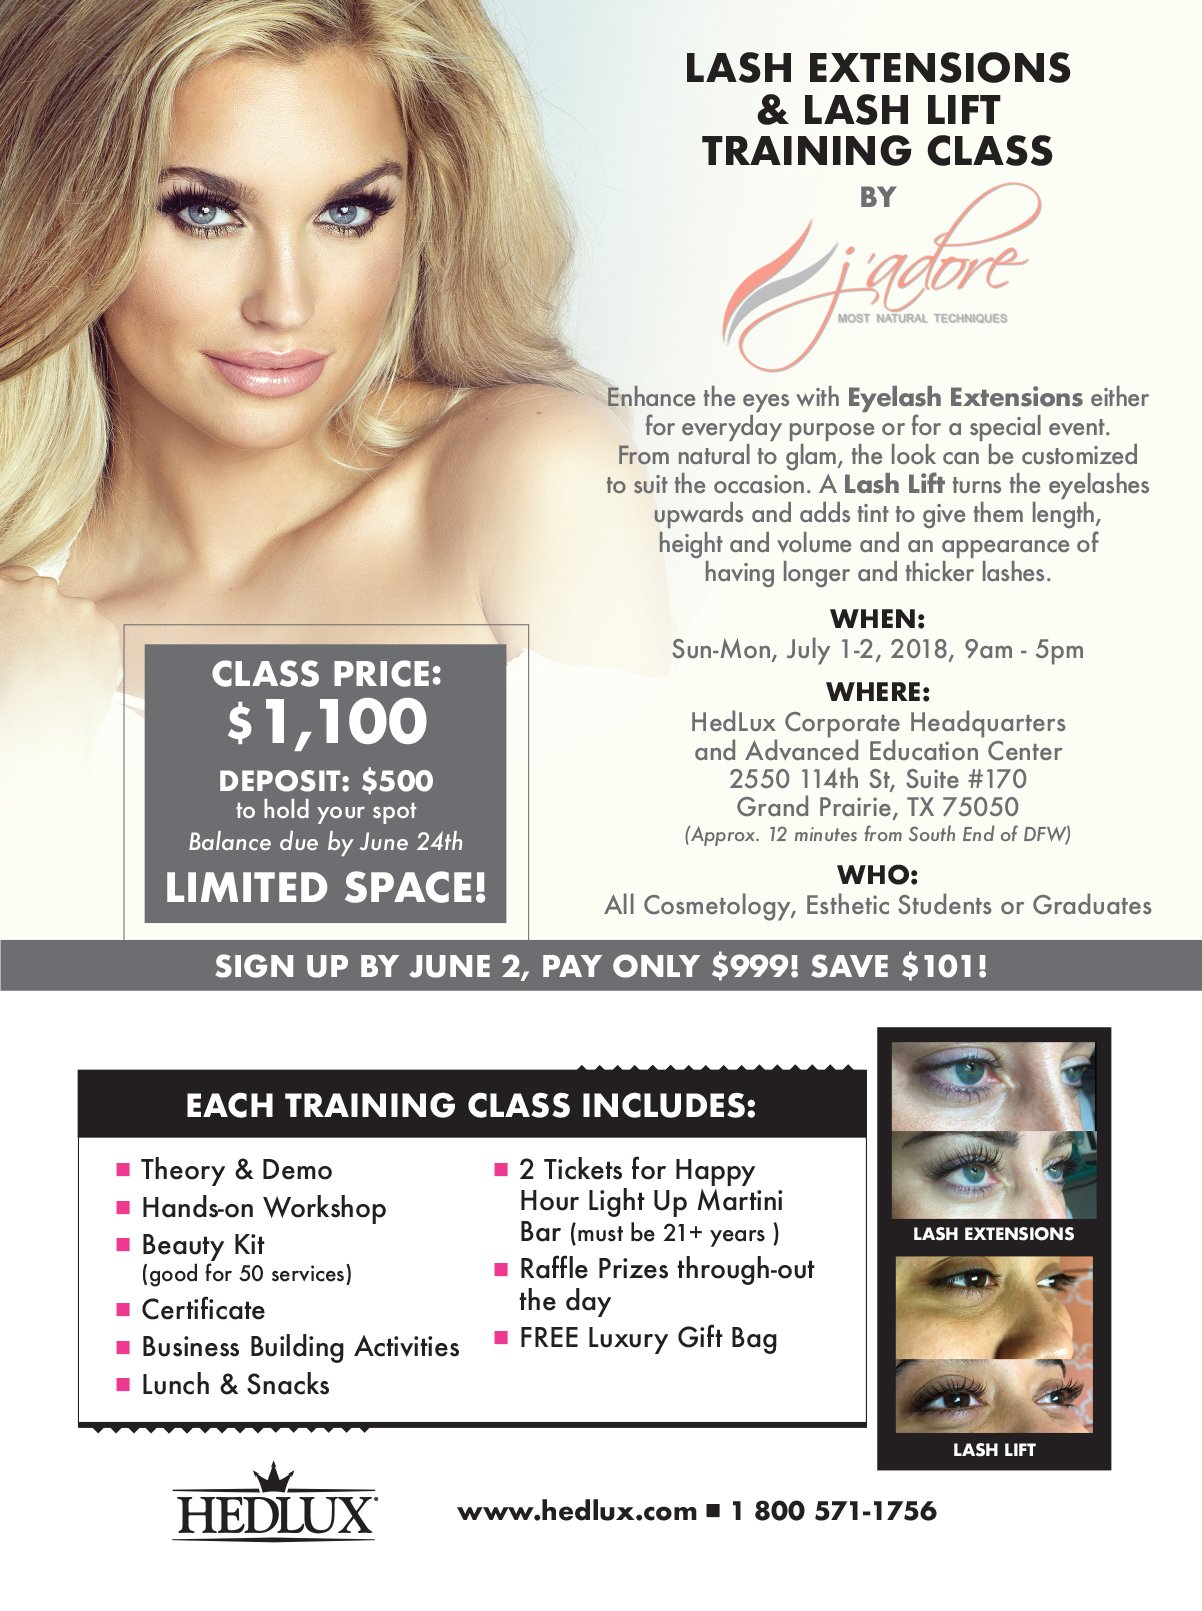 Get Certified With Hedlux And Jadore Eyelash Extensions And Lash